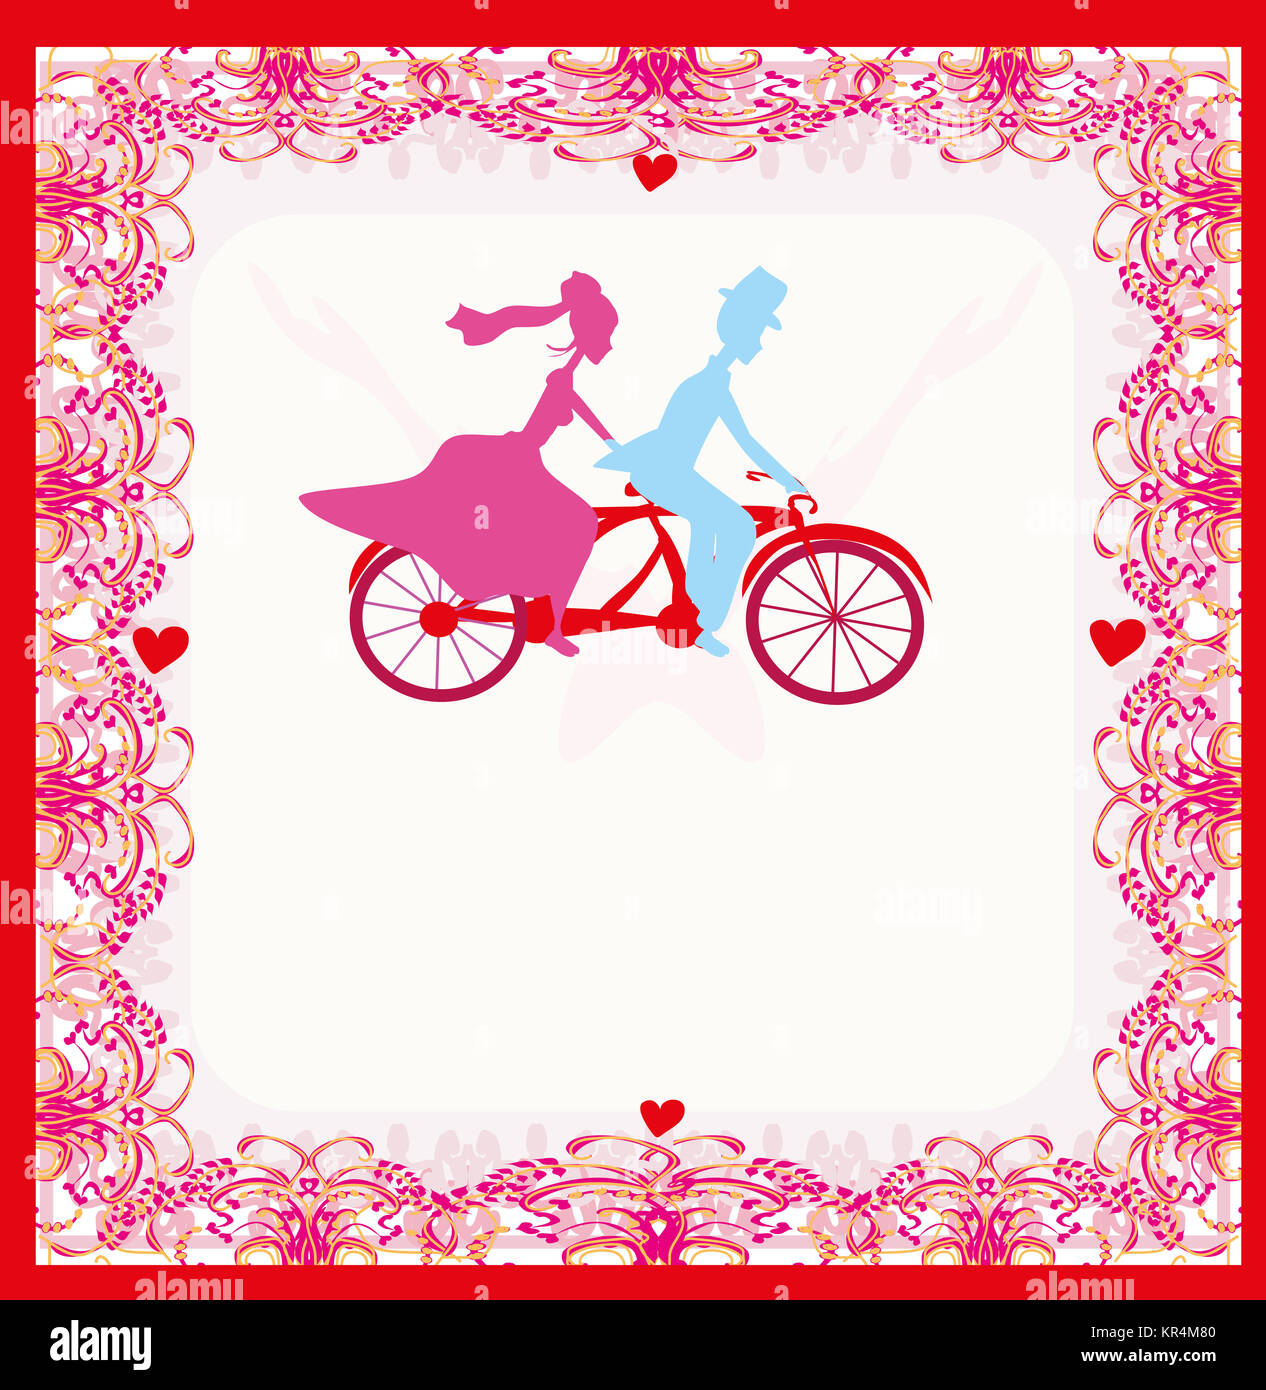 wedding invitation with bride and groom riding a tandem bicycle ...